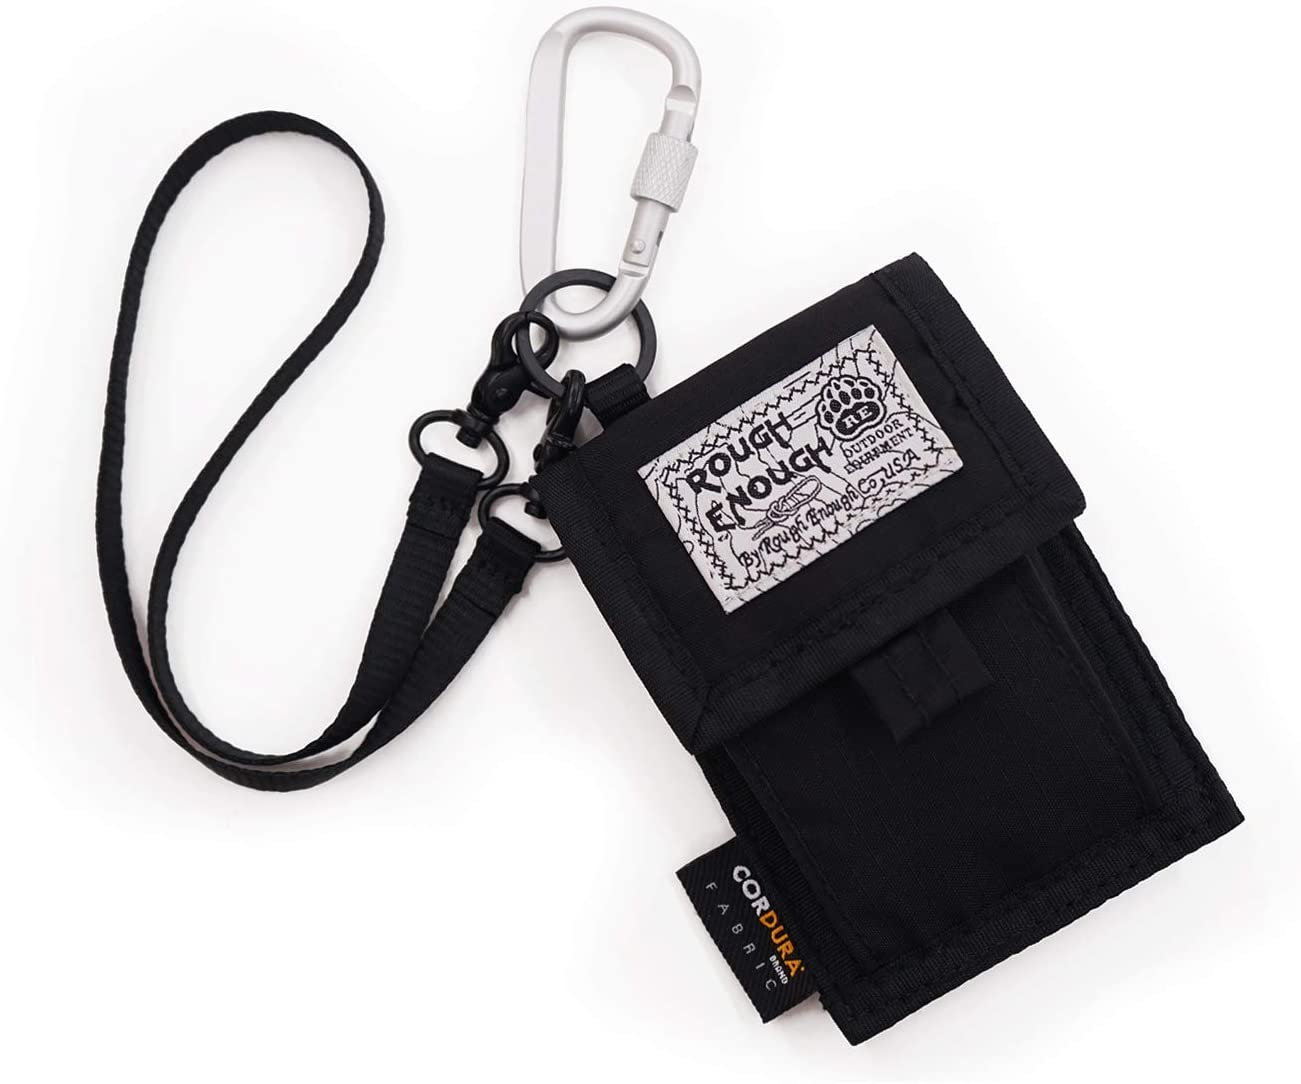 1Pce PU Leather Key Holder Case Keychains Pouch Bag Wallet Key Ring Coin Purse